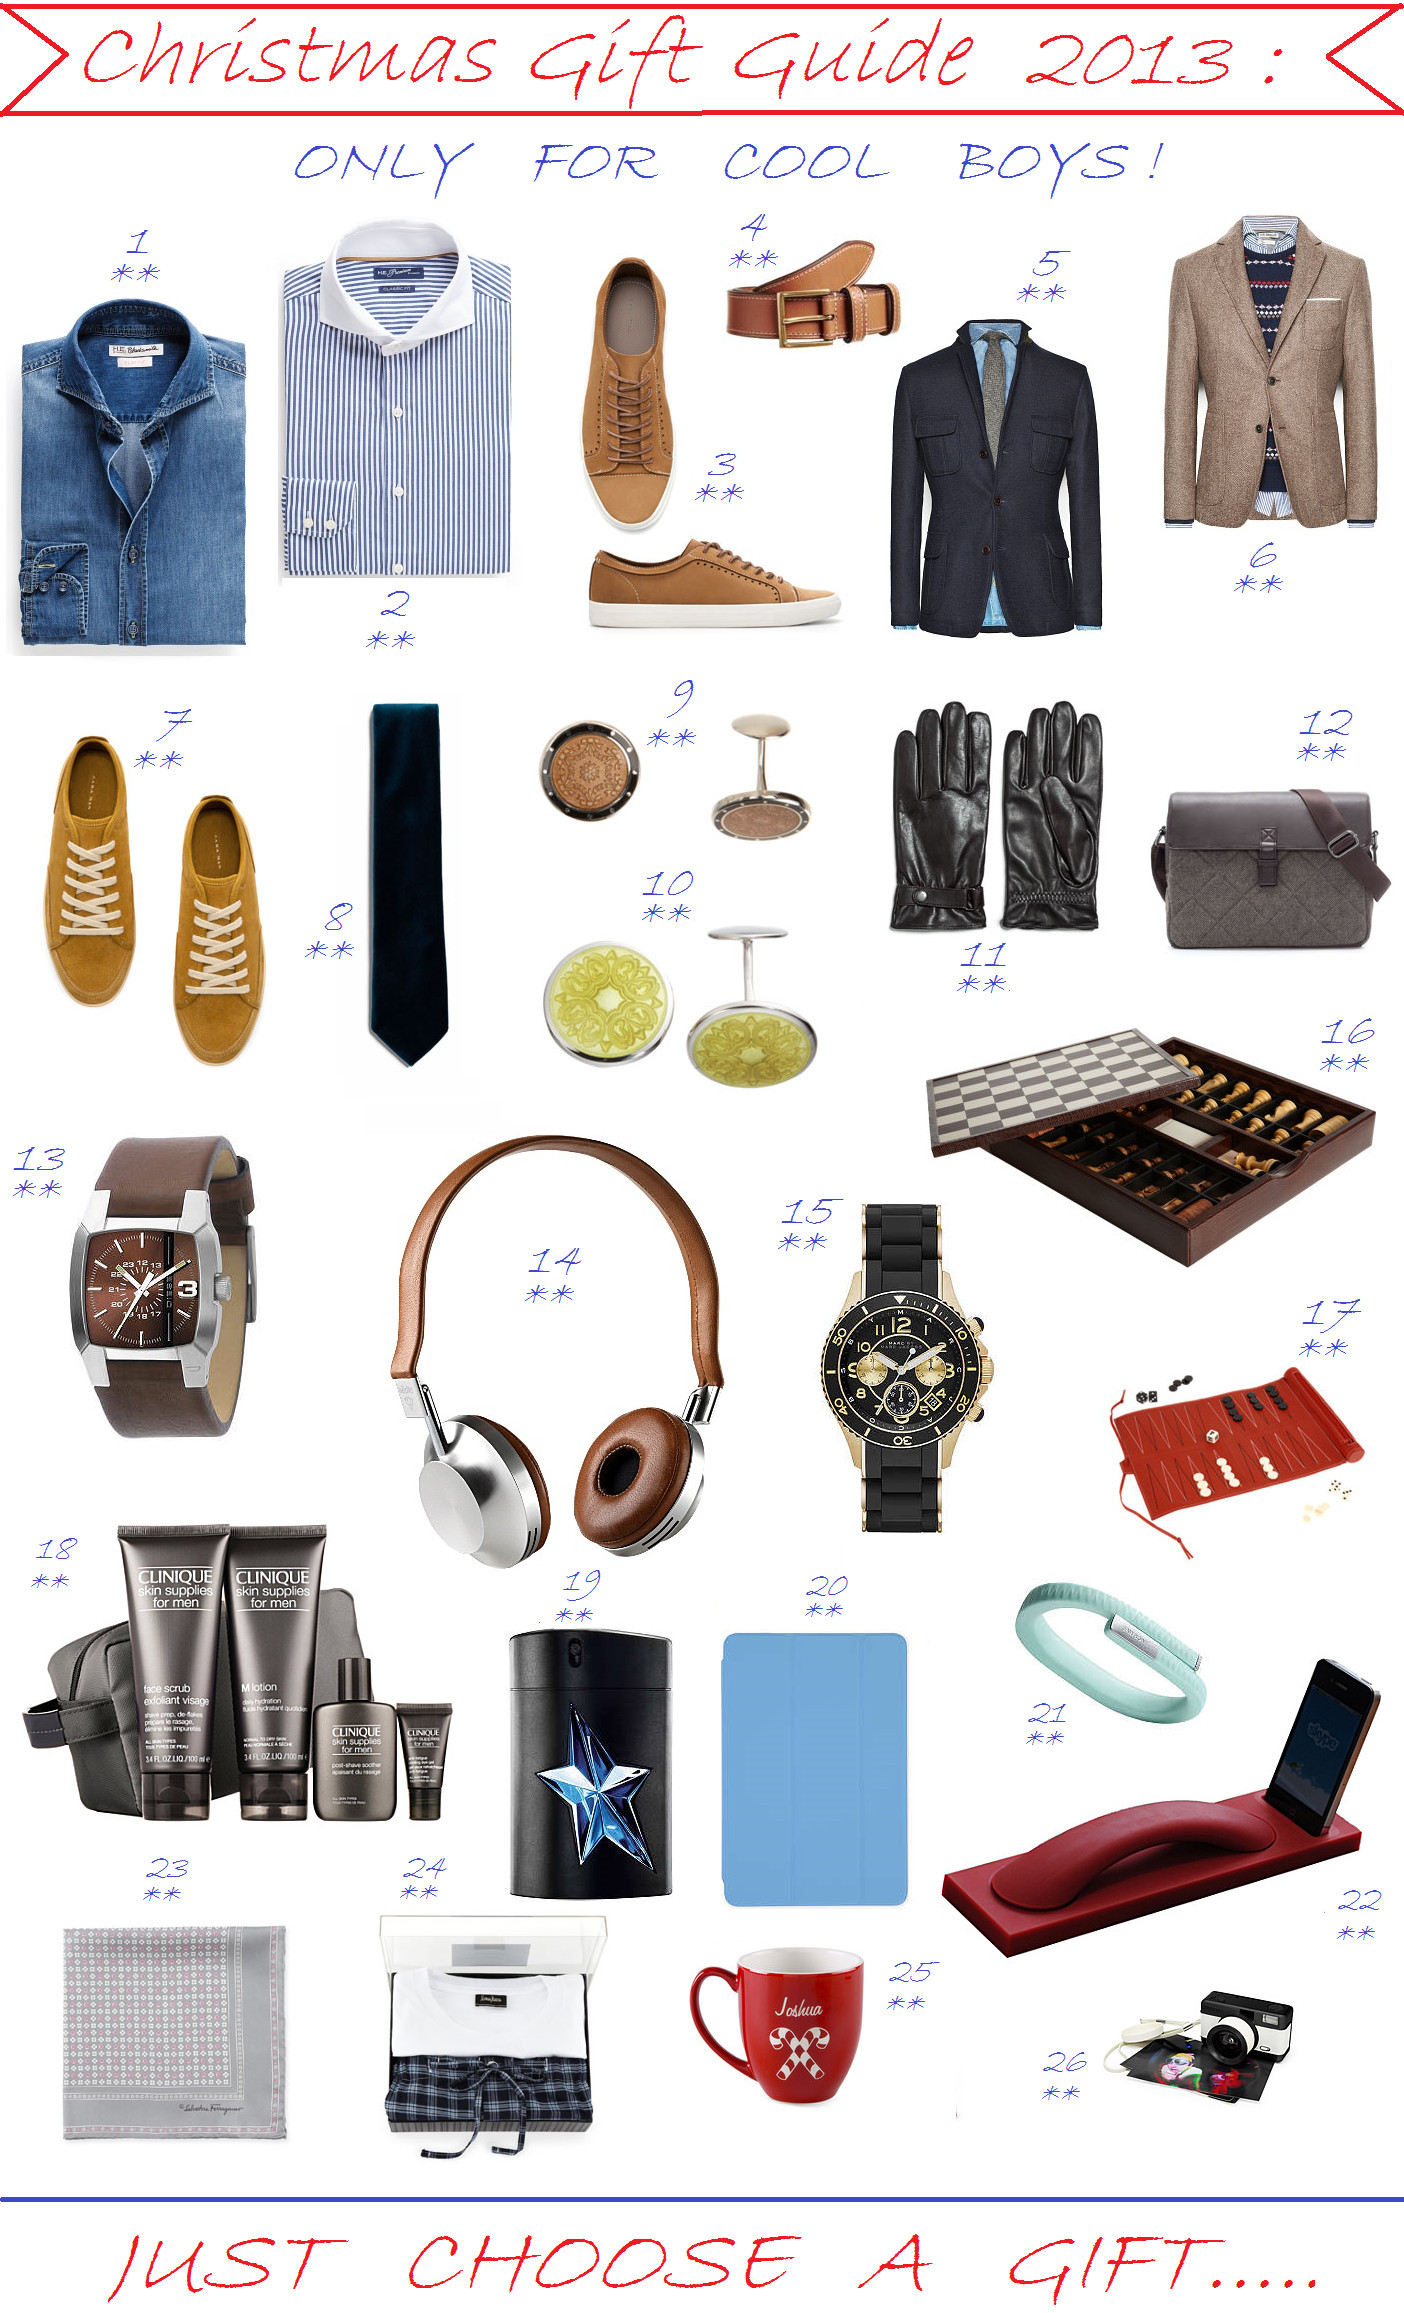 Best ideas about Good Gift Ideas For Boys . Save or Pin CHRISTMAS GIFT GUIDE 2013 ONLY FOR COOL BOYS Now.